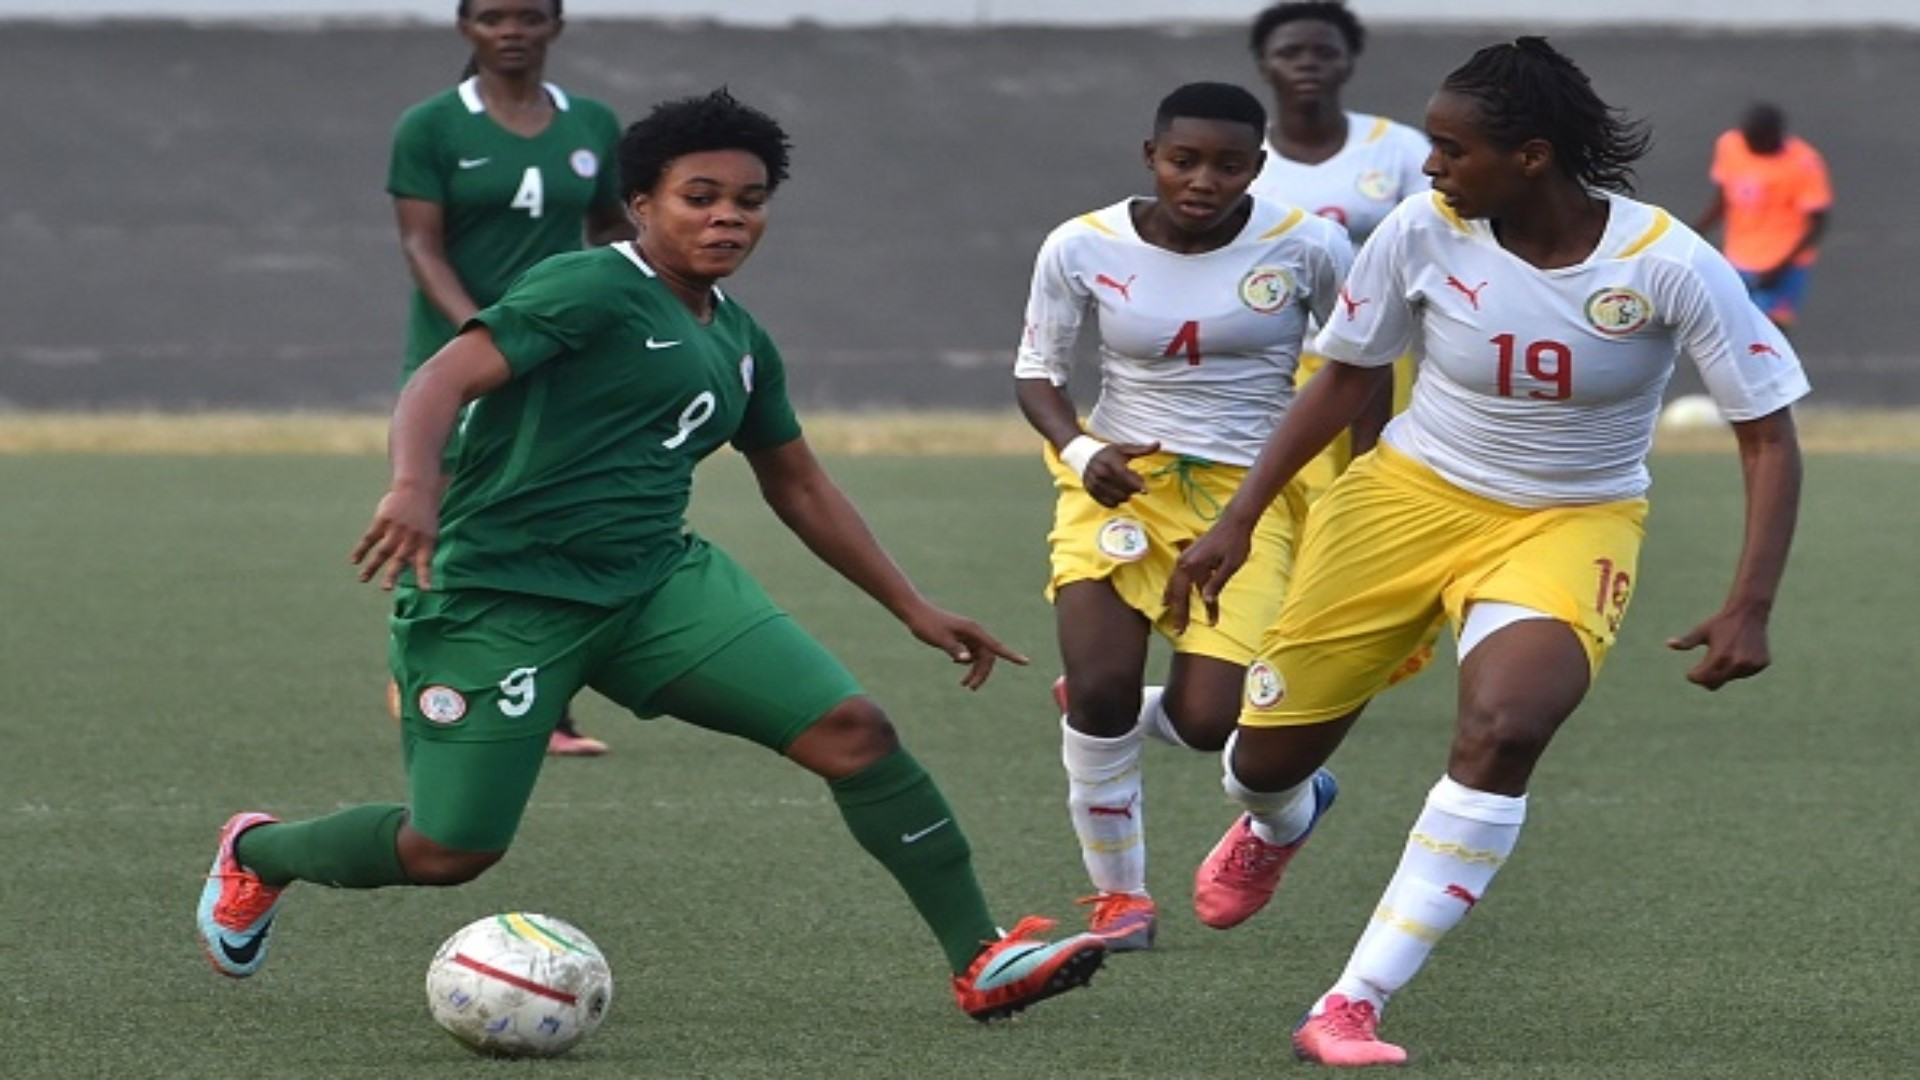 Chioma Wogu reveals the Bizzare reason for pursuing a career in football